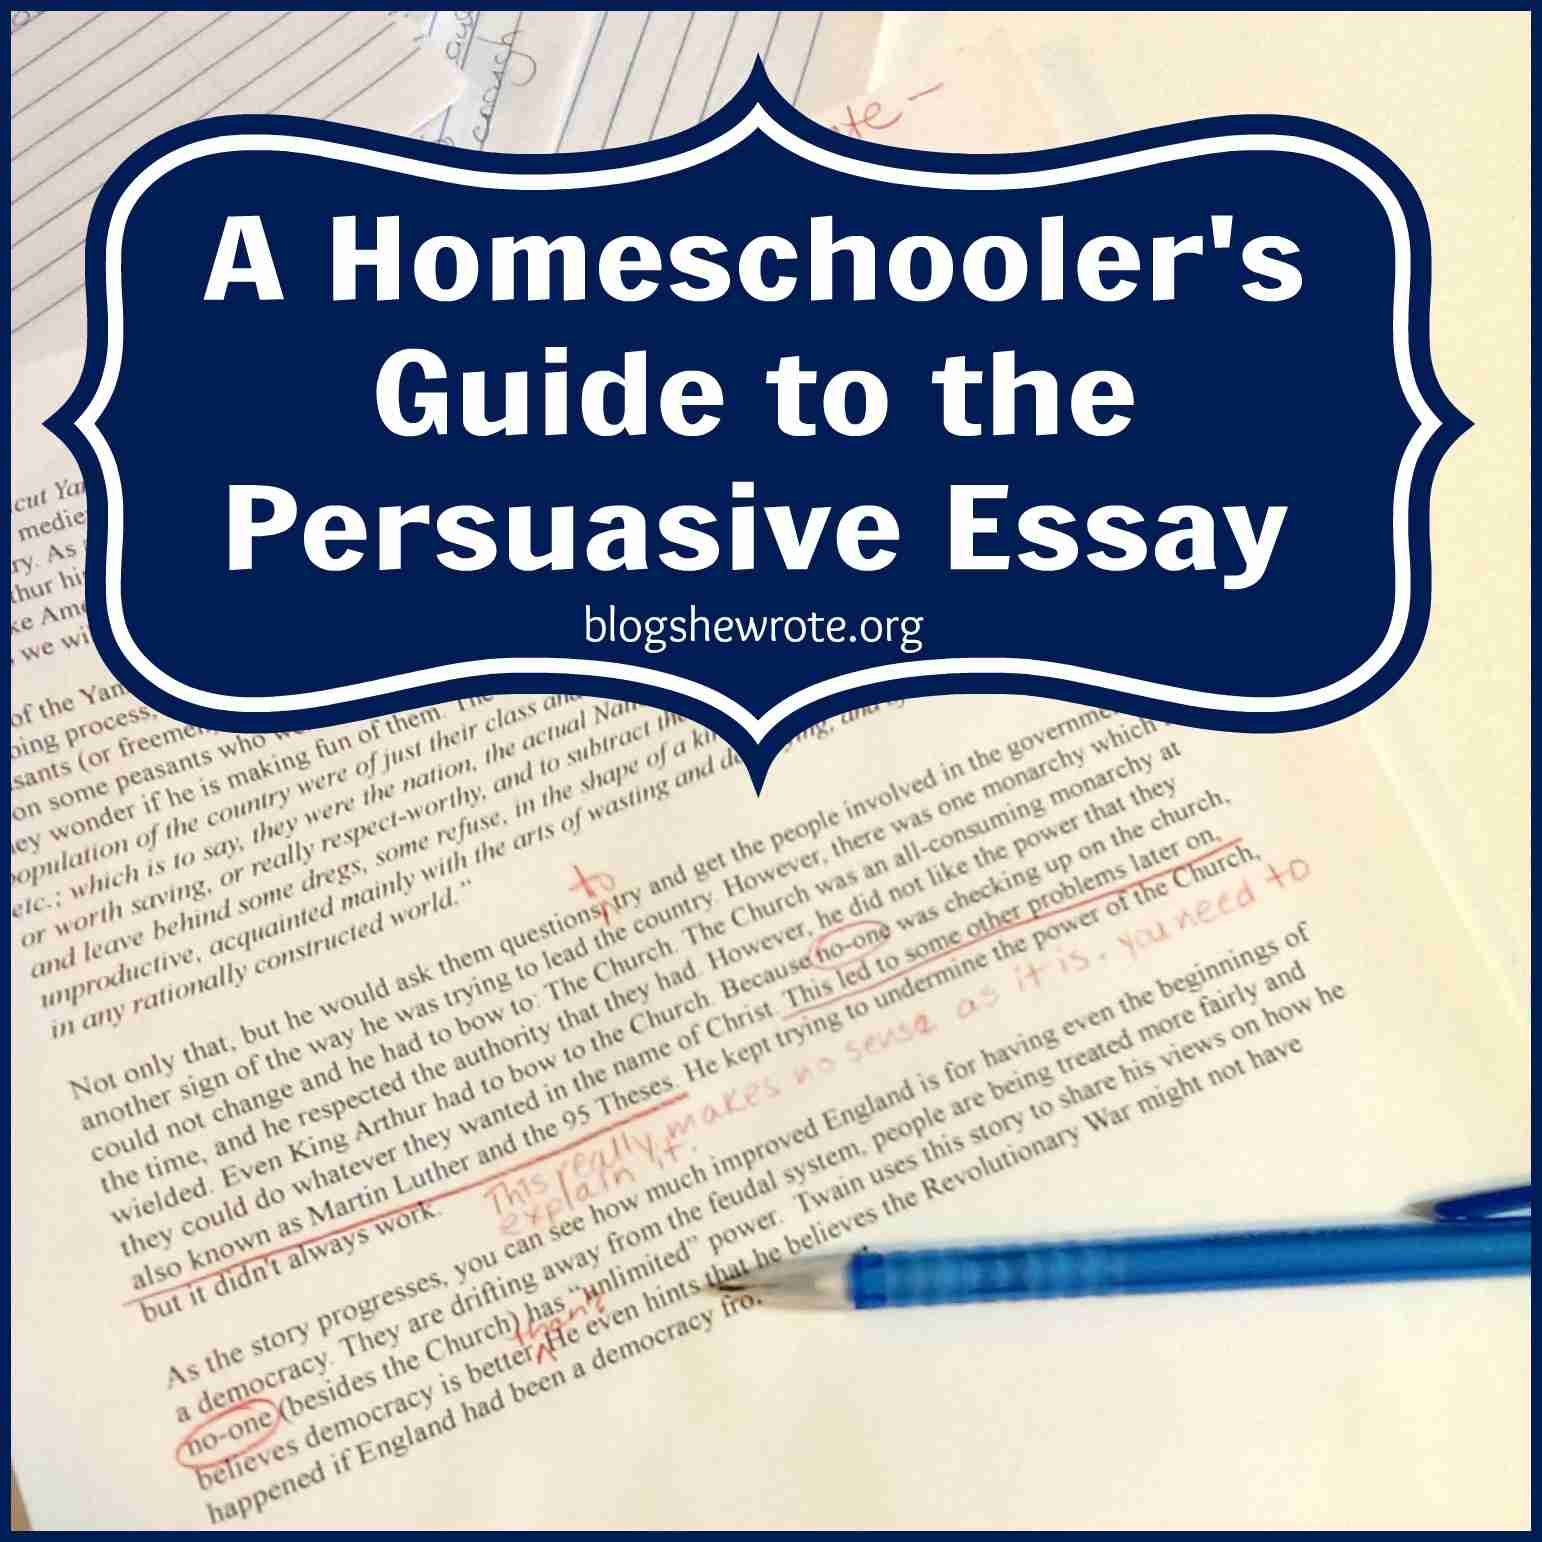 Example Of Essay With Thesis Statement A Homeschoolers Guide To The Persuasive Essay Edit Essays also Essays On Lowering The Drinking Age To 18 A Homeschoolers Guide To The Persuasive Essay  Blog She Wrote Essays On Liberty